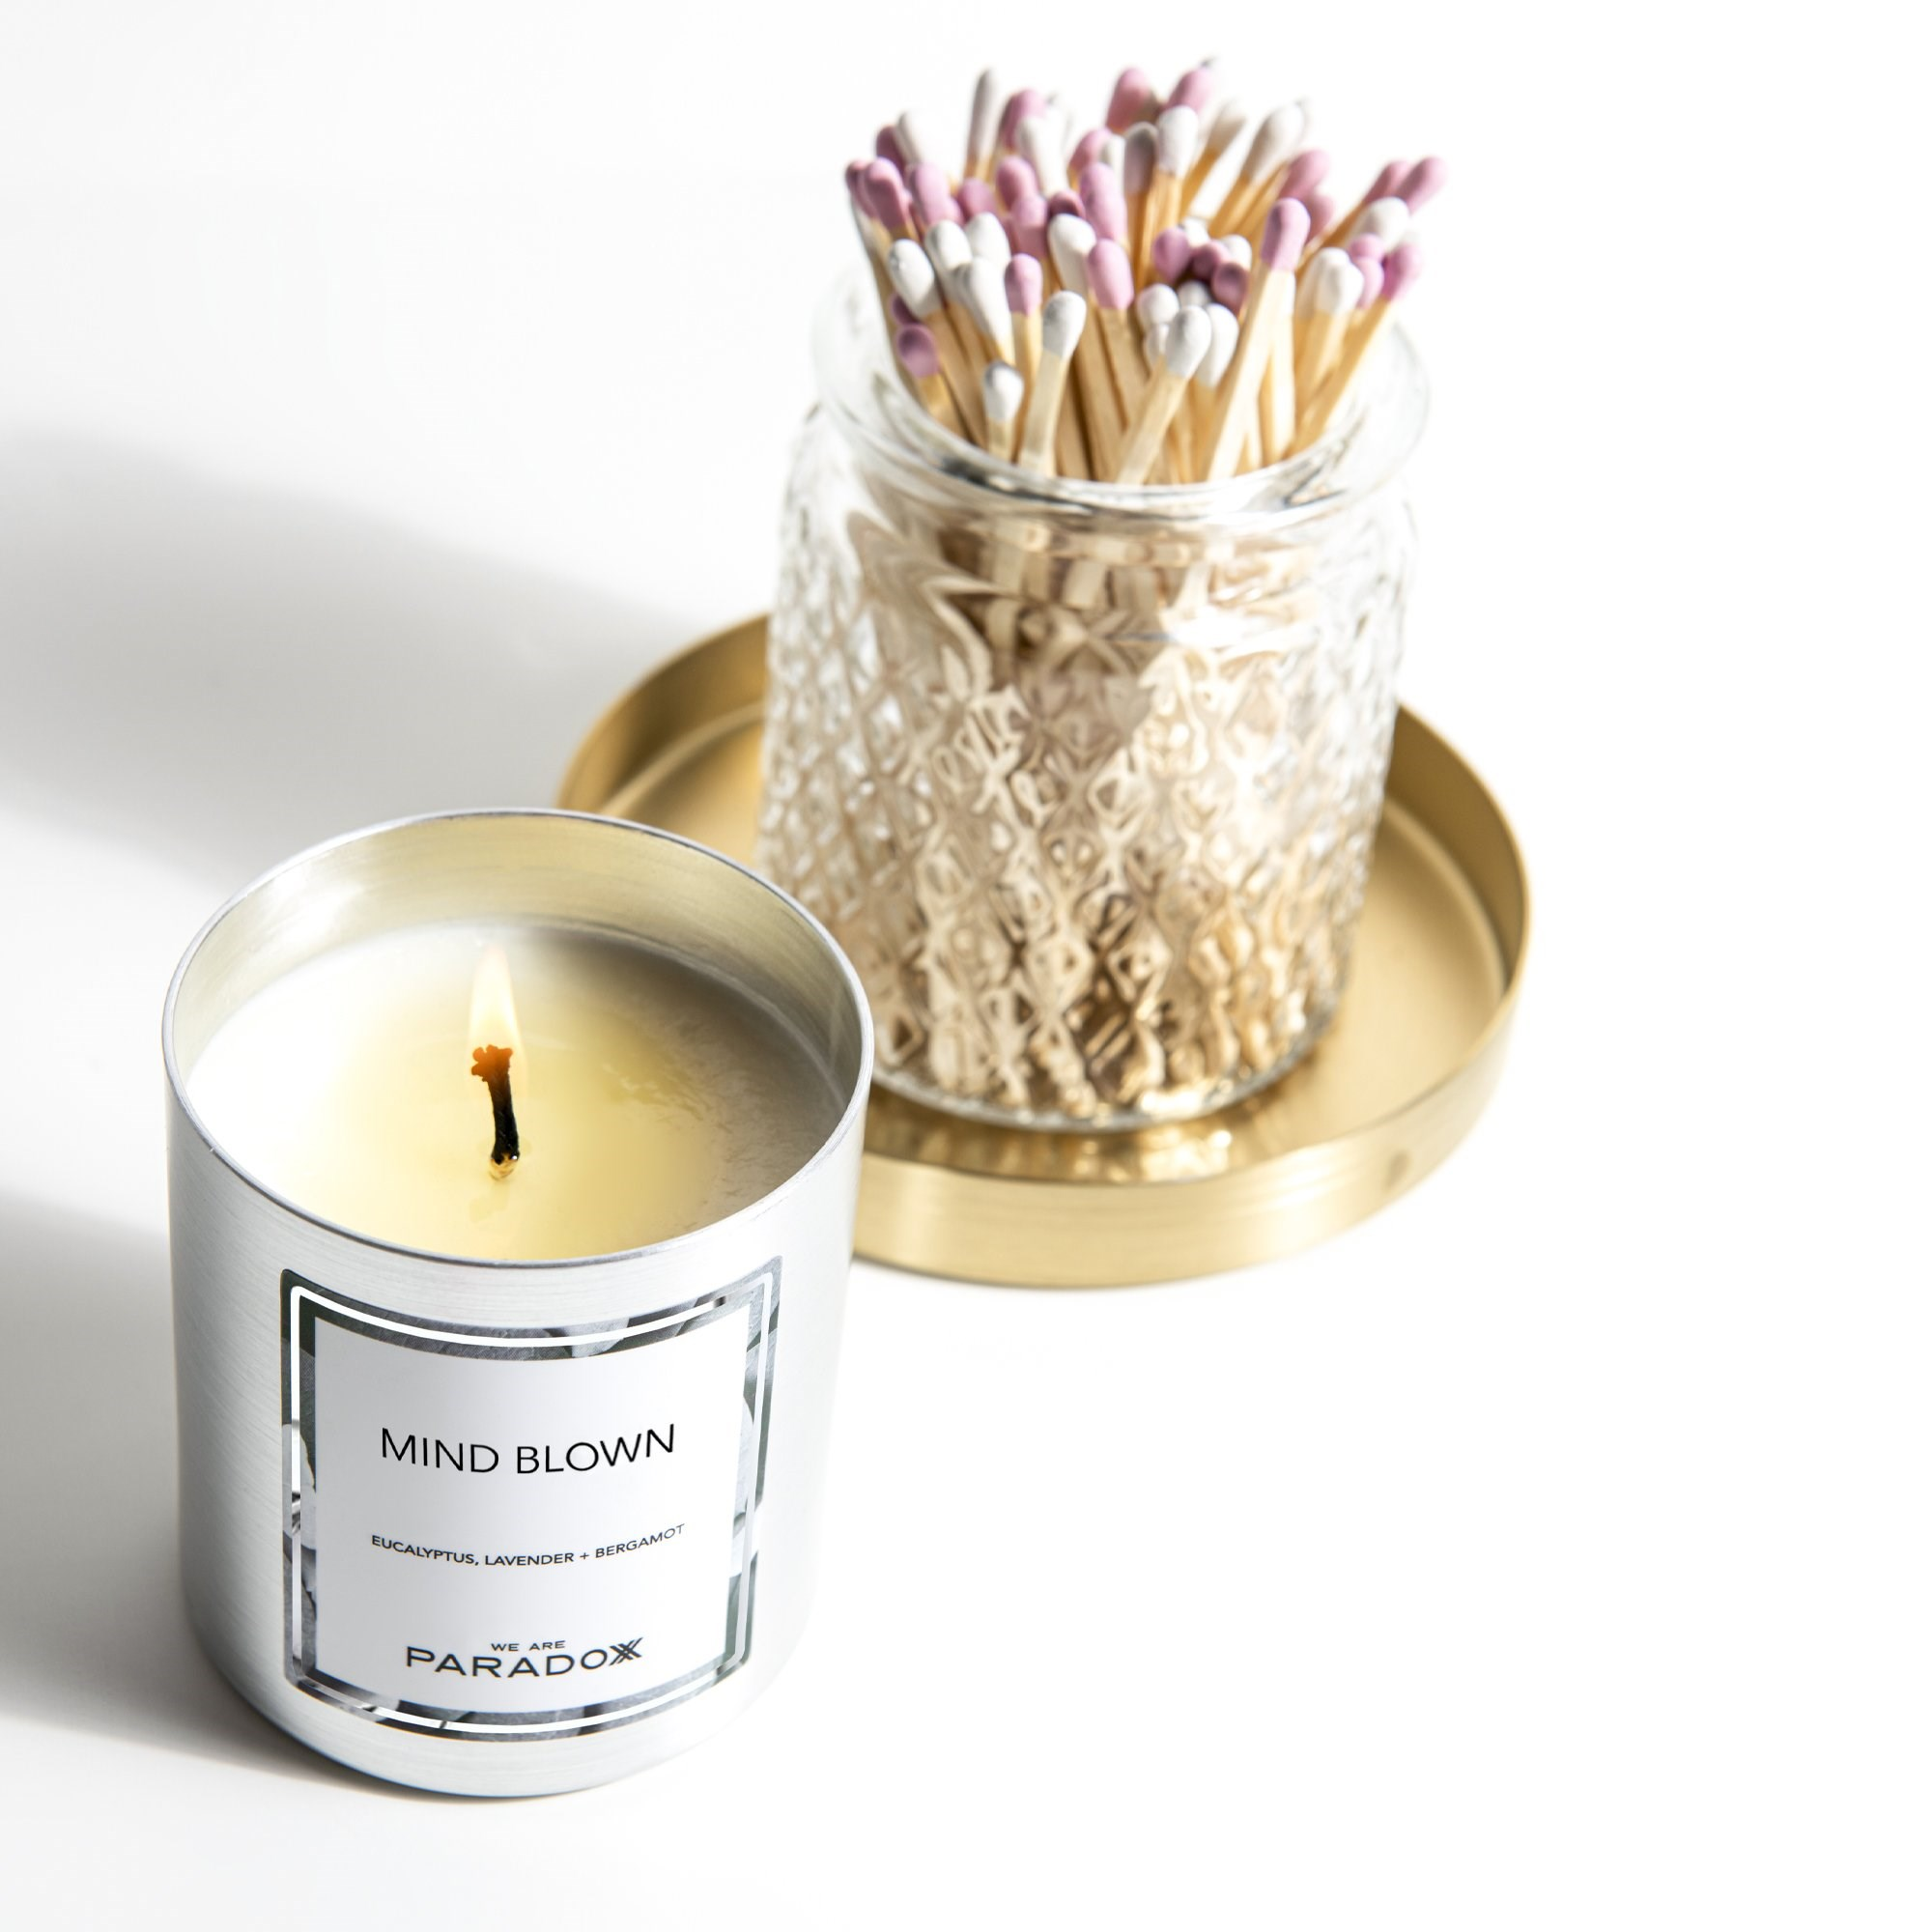 MIND BLOWN HAIR + BODY TREATMENT OIL CANDLE 7